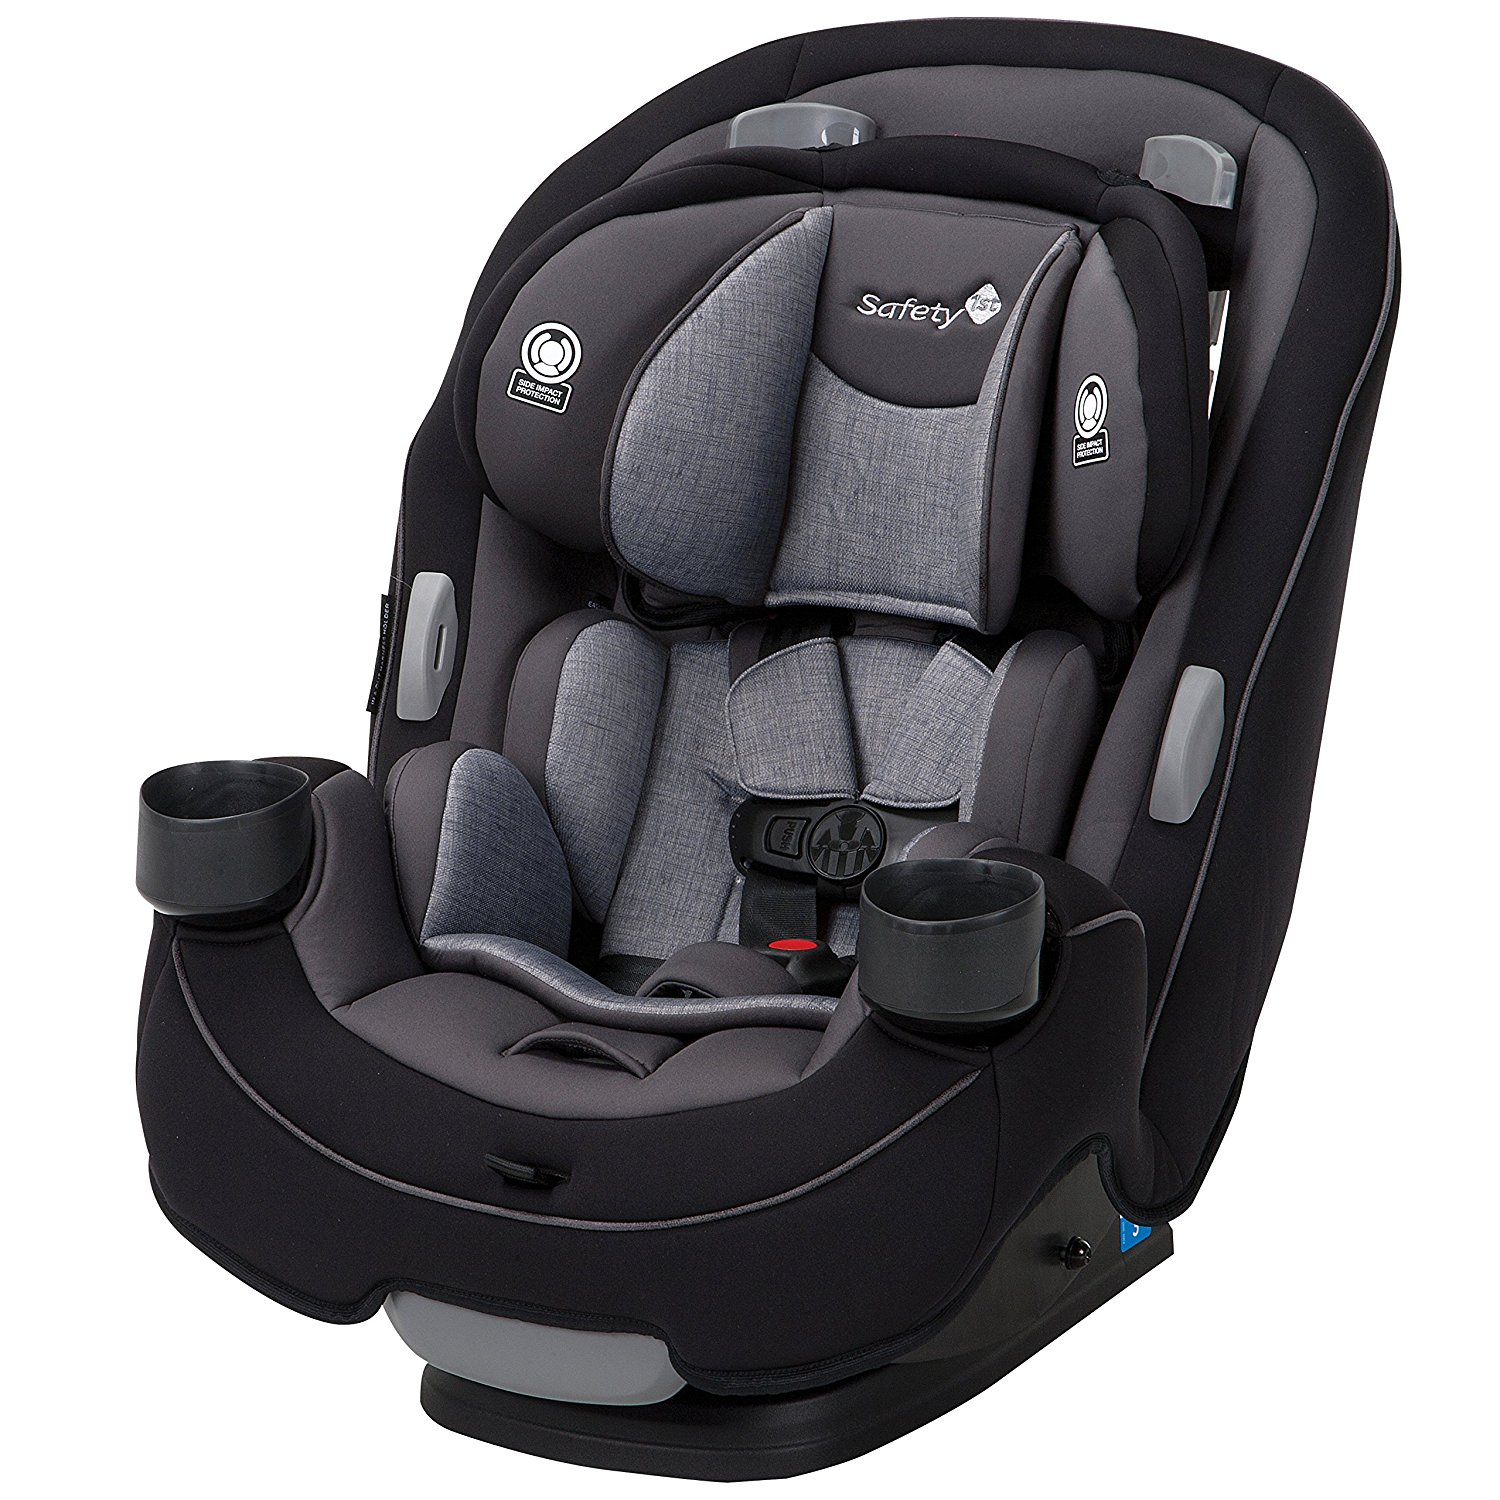 4. Safety 1st Grow and Go 3-in-1 Convertible